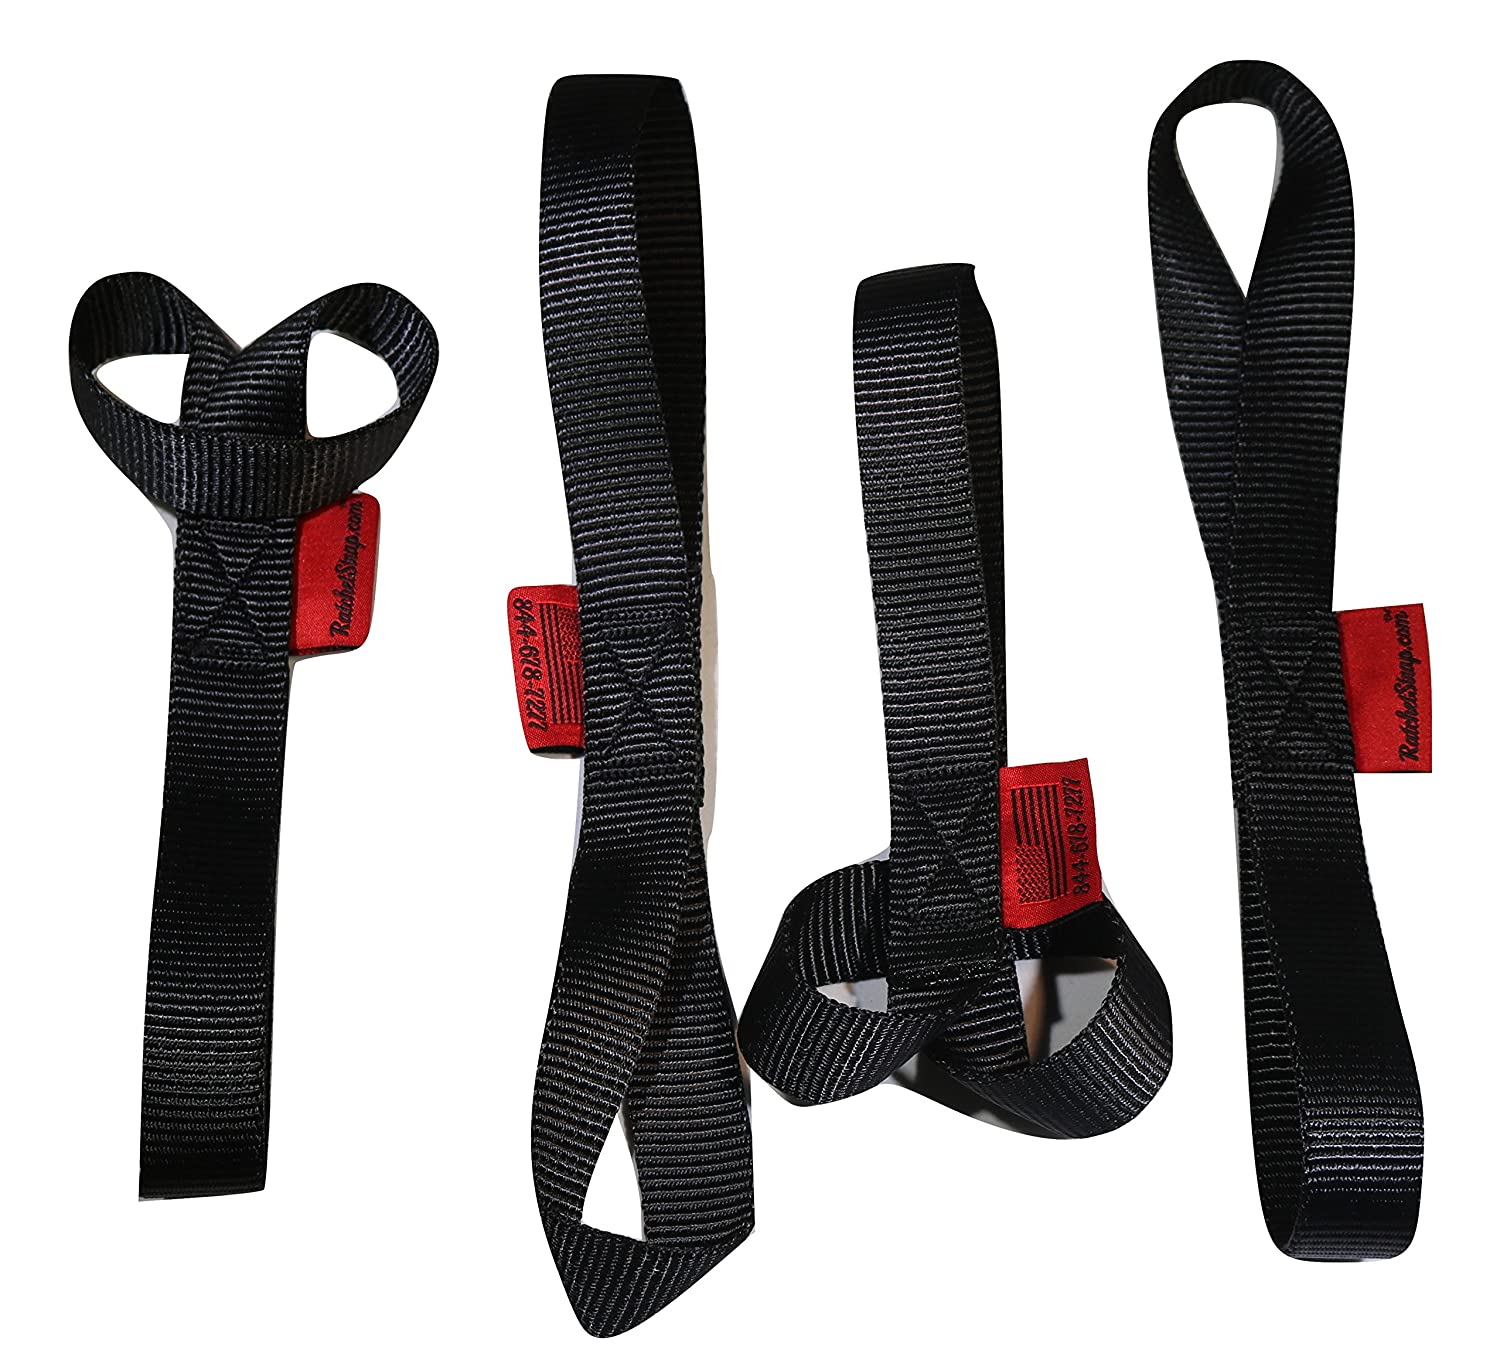 (4) 1 inch X 12 inch Soft Tie Loops - Made in USA 4, 500 lb. Web RatchetStrap.com